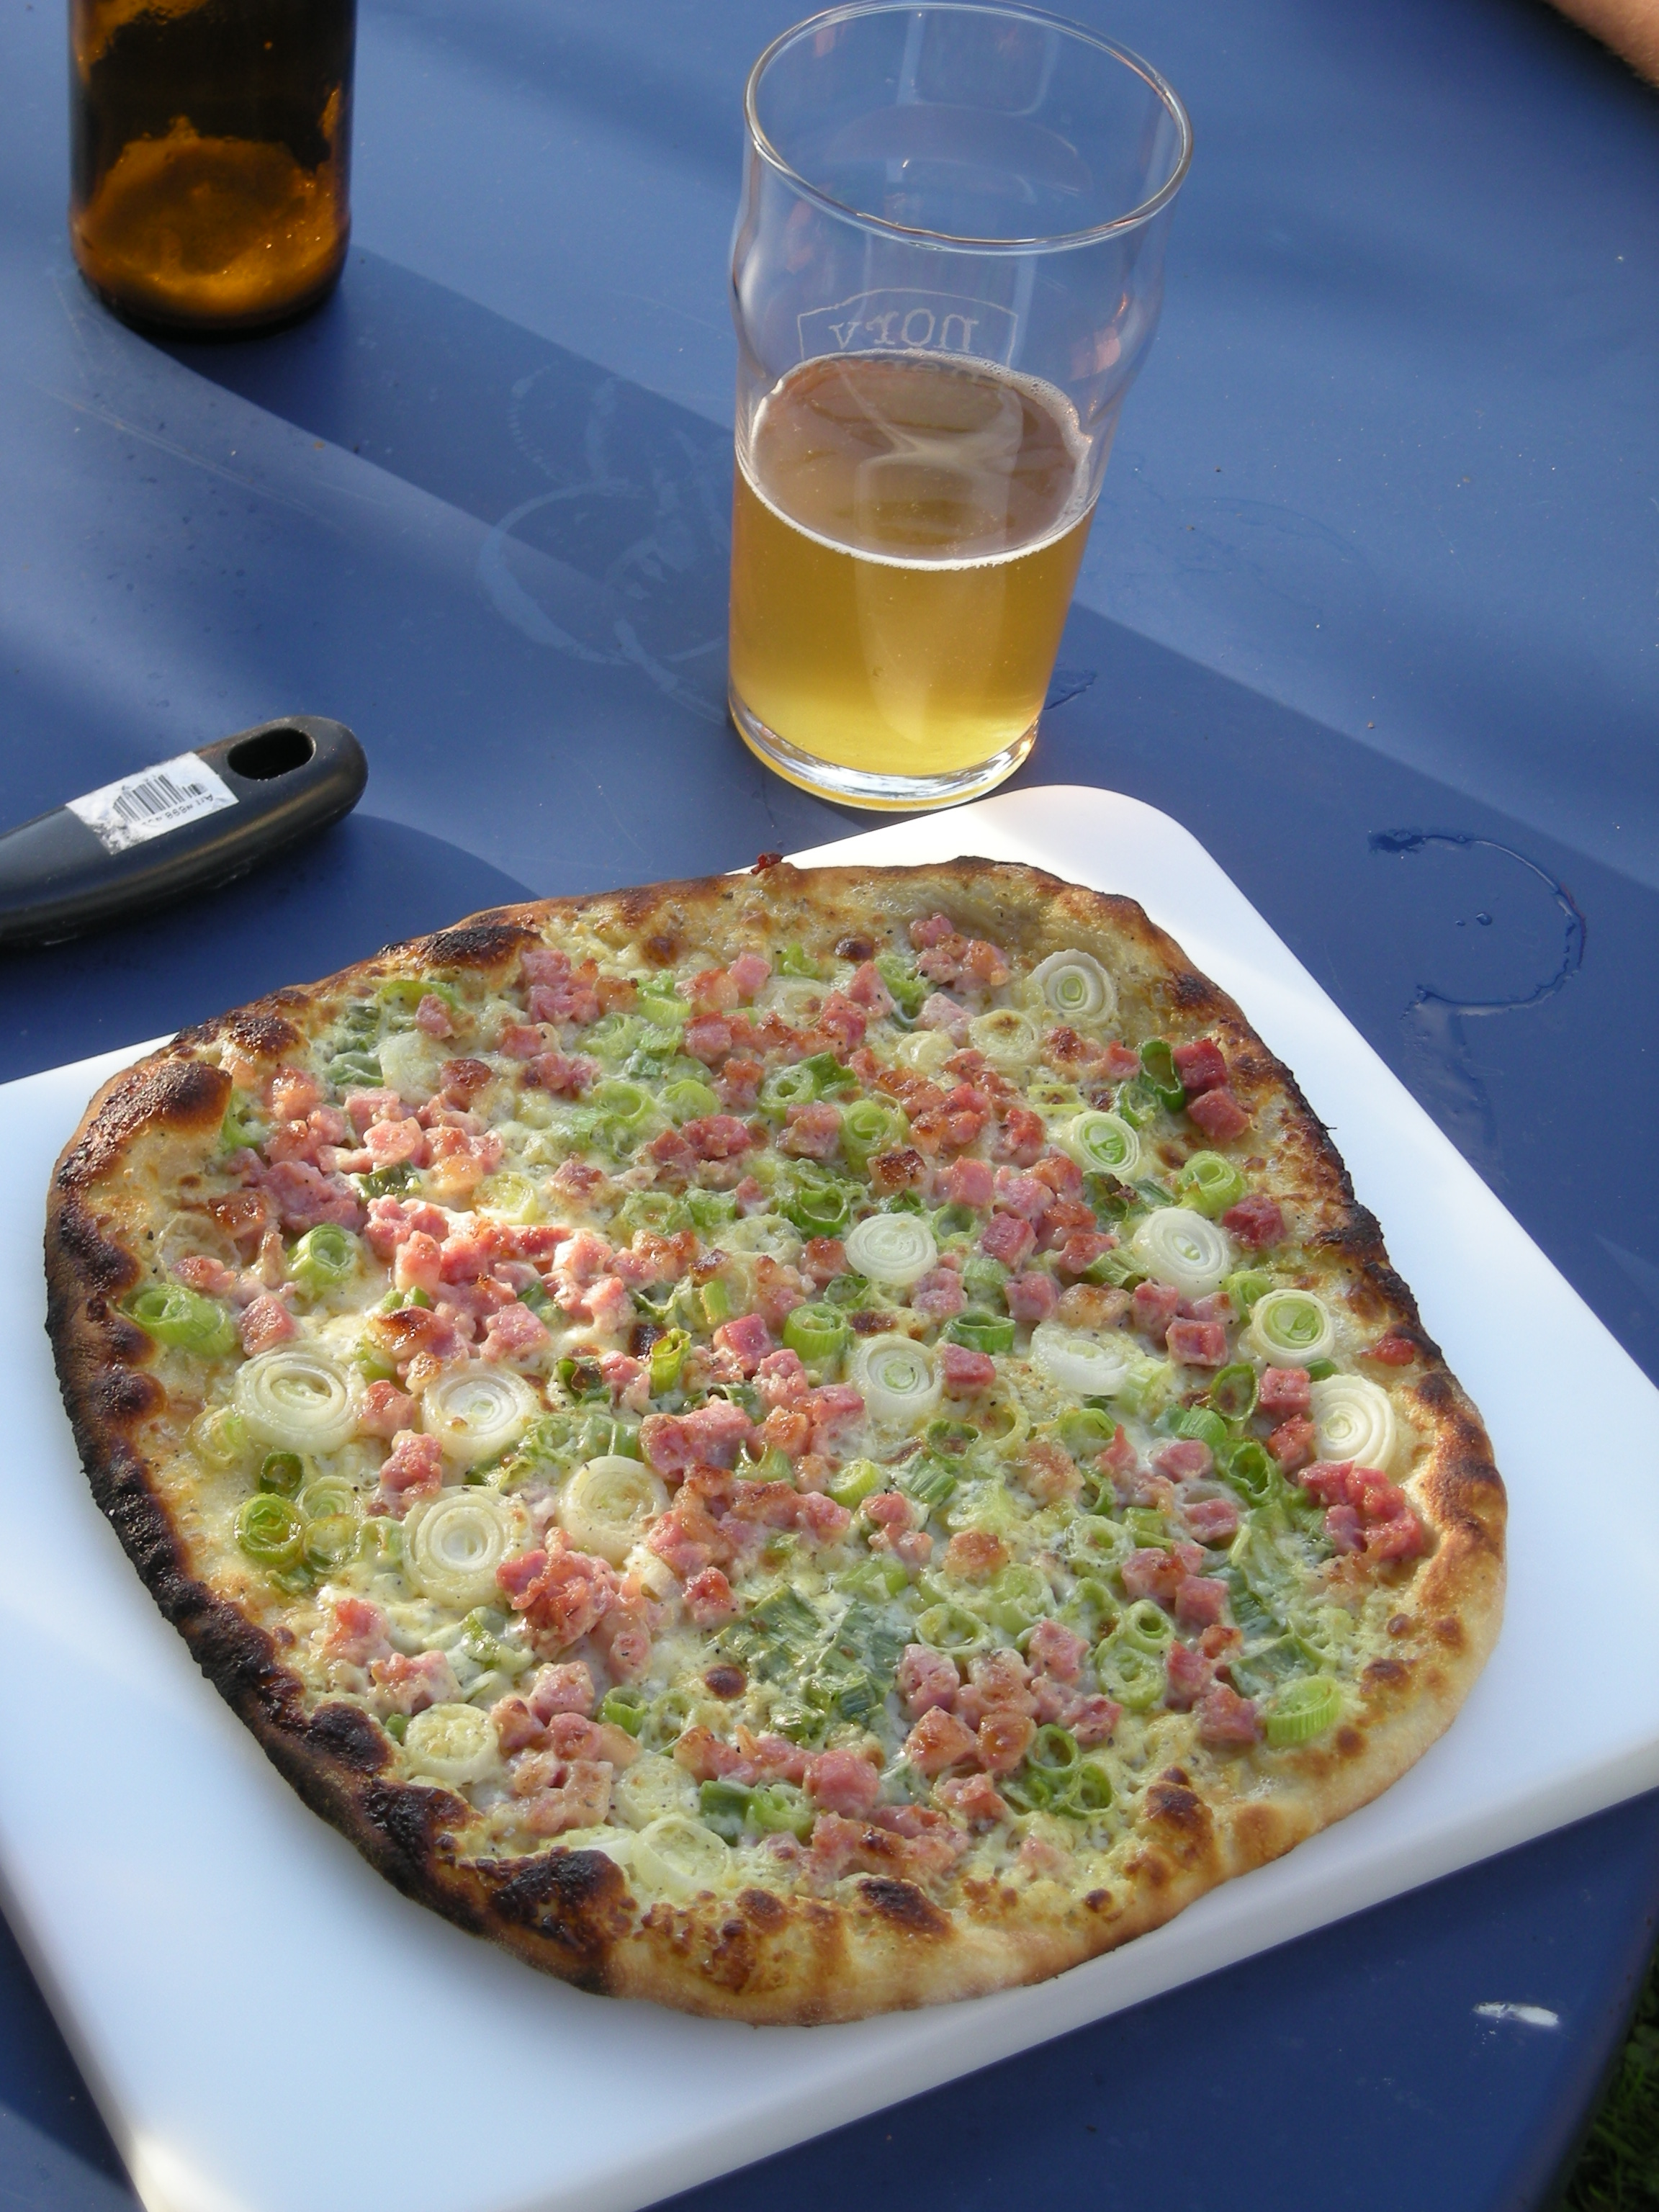 Flammkuchen - the other type of pizza